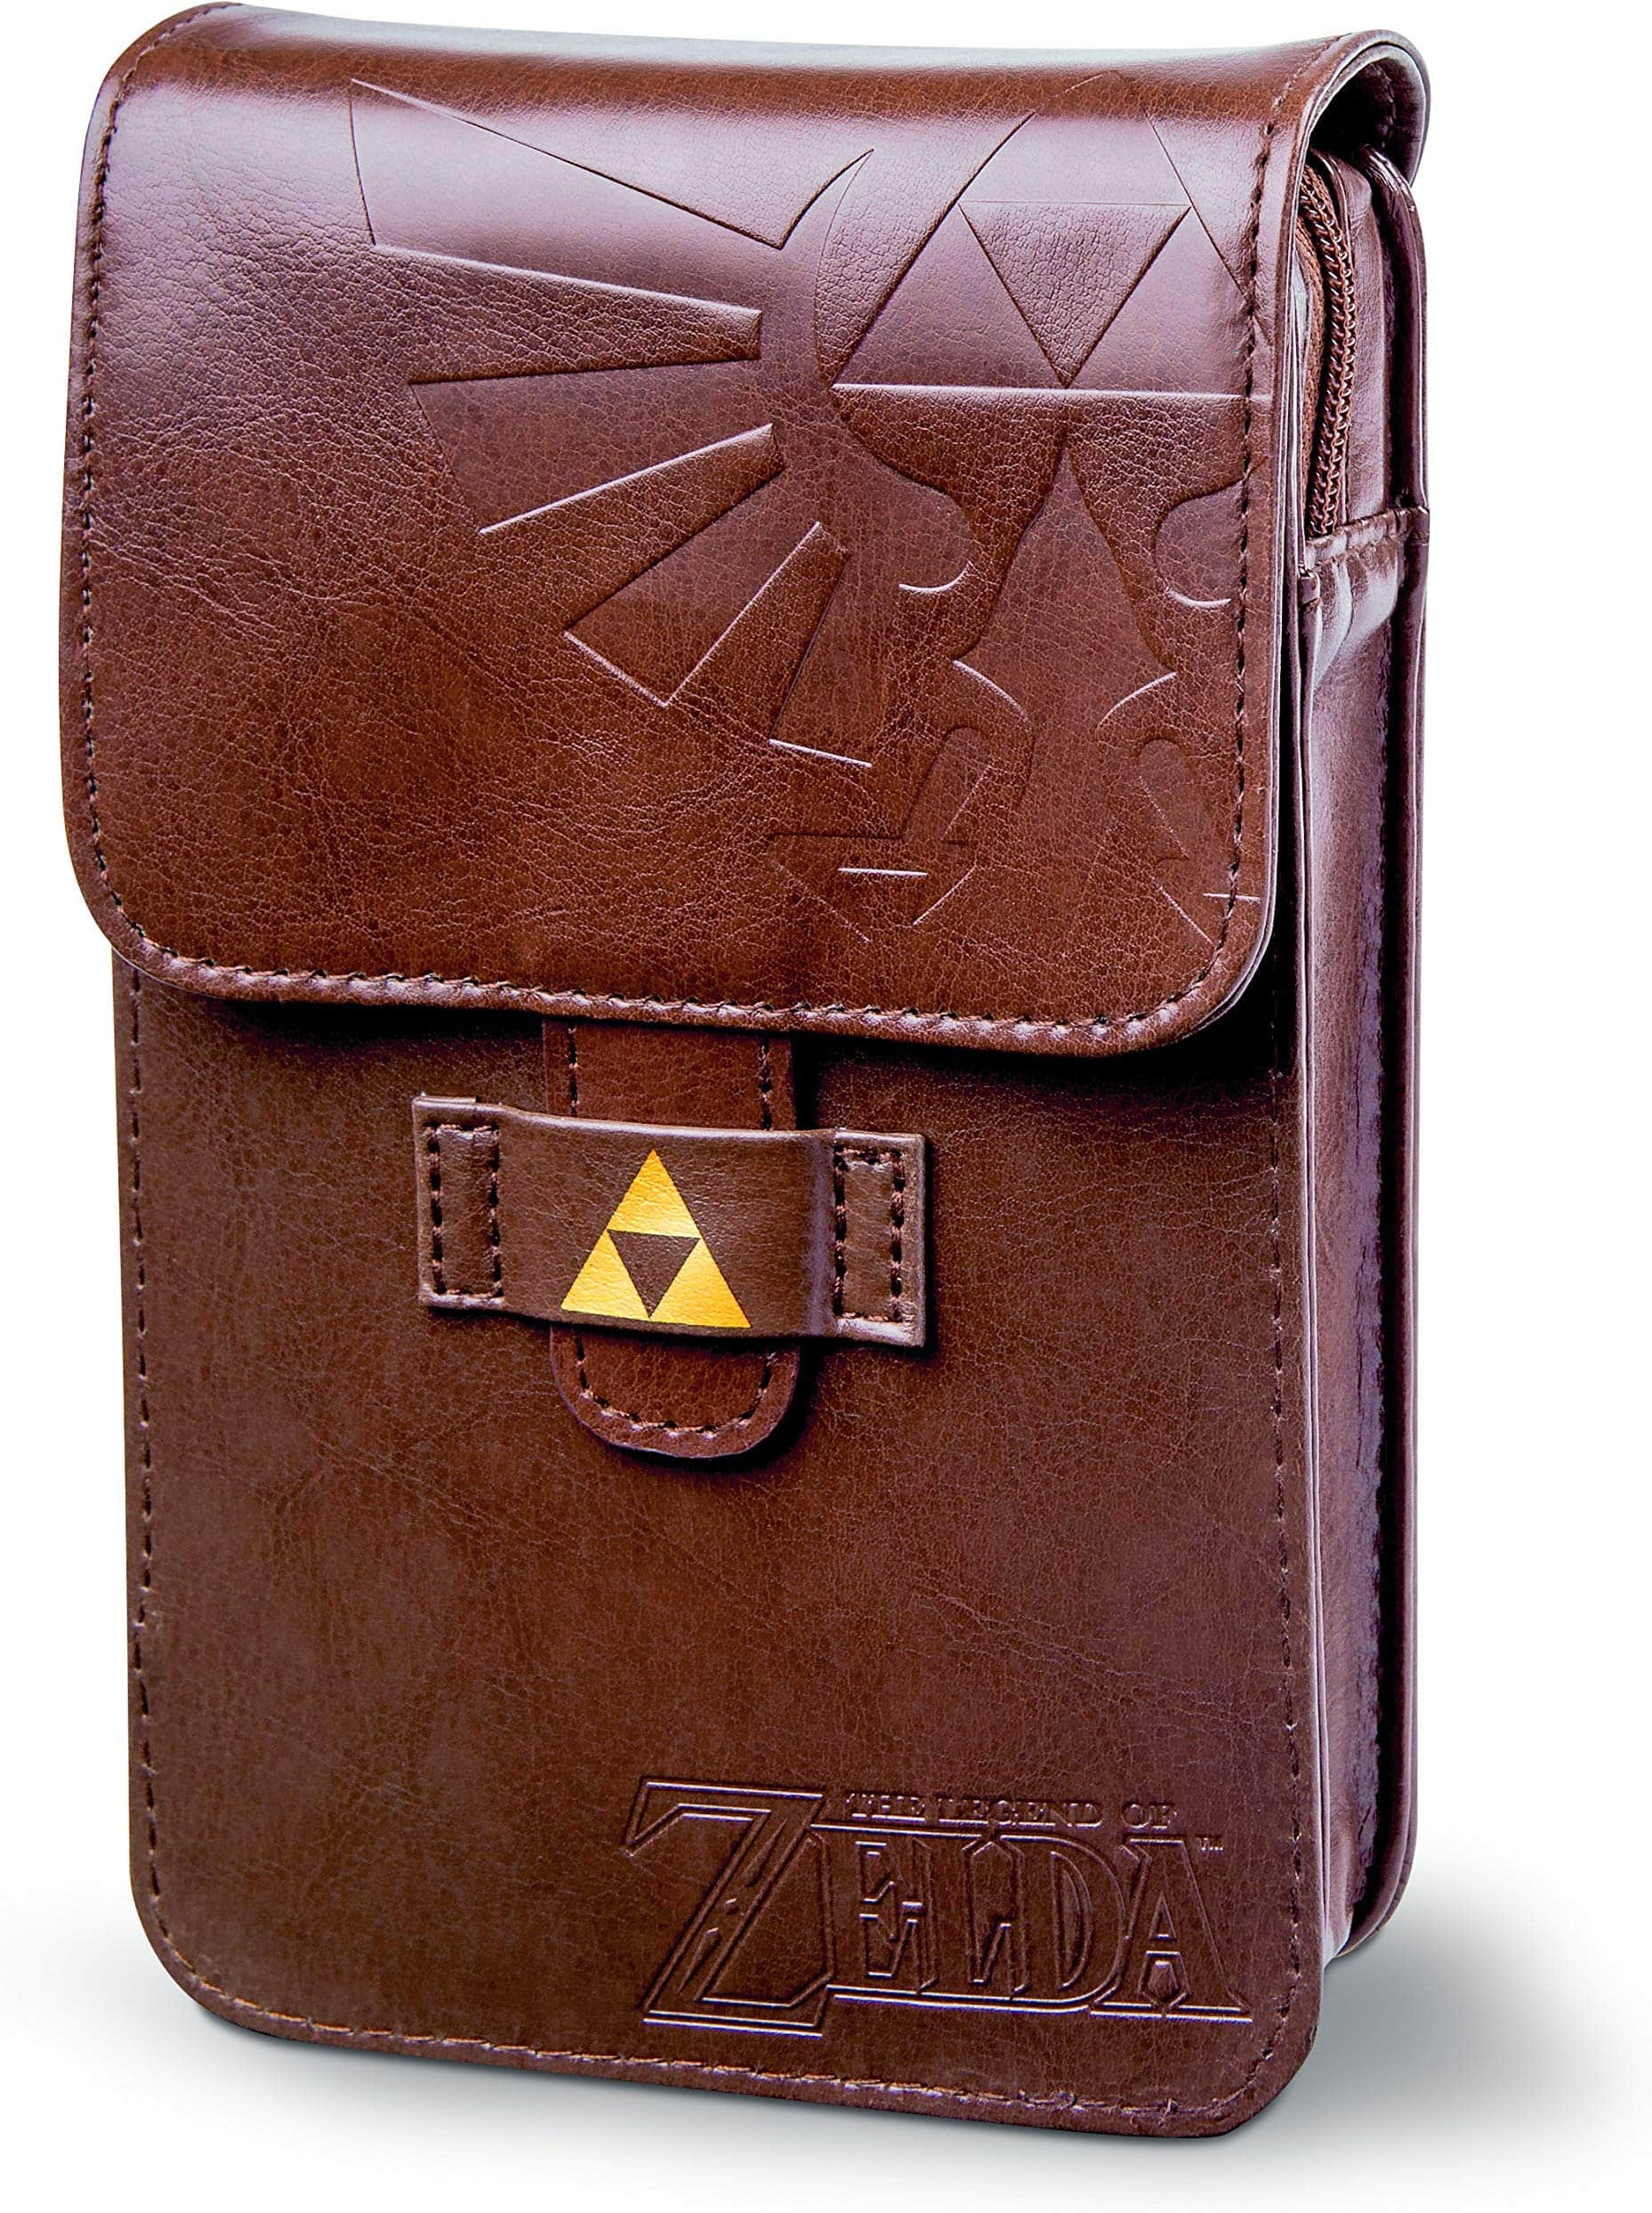 PowerA The Legend of Zelda Adventurer's Pouch (Nintendo 3DS) for $9 + Free Store Pickup